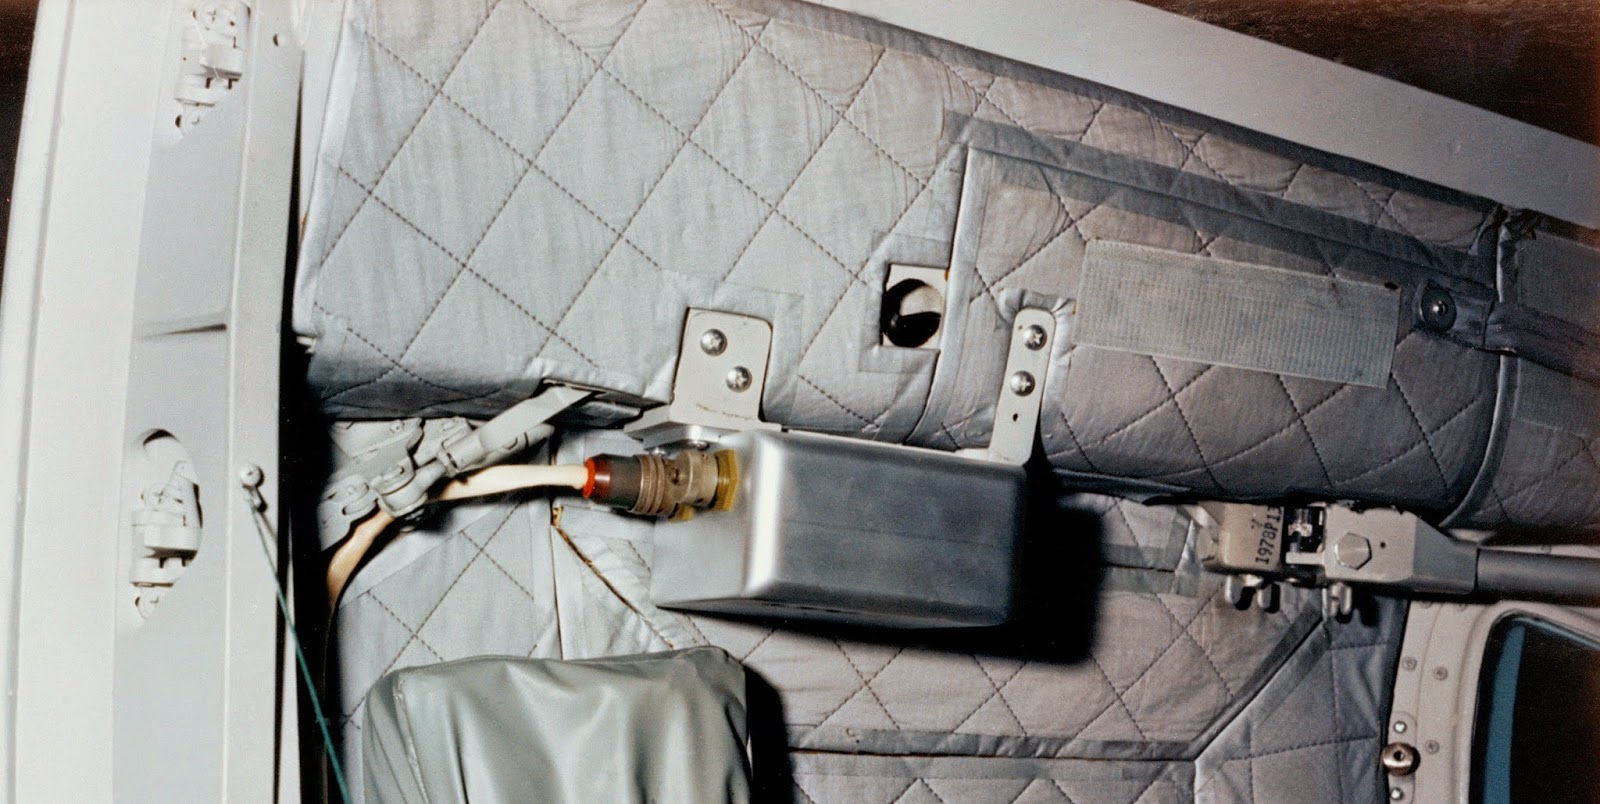 physics buzz the bermuda triangle of space nasa s bremsstrahlung spectrometer mounted inside of gemini 12 it measured radiation levels inside the spacecraft while it flew through the south atlantic